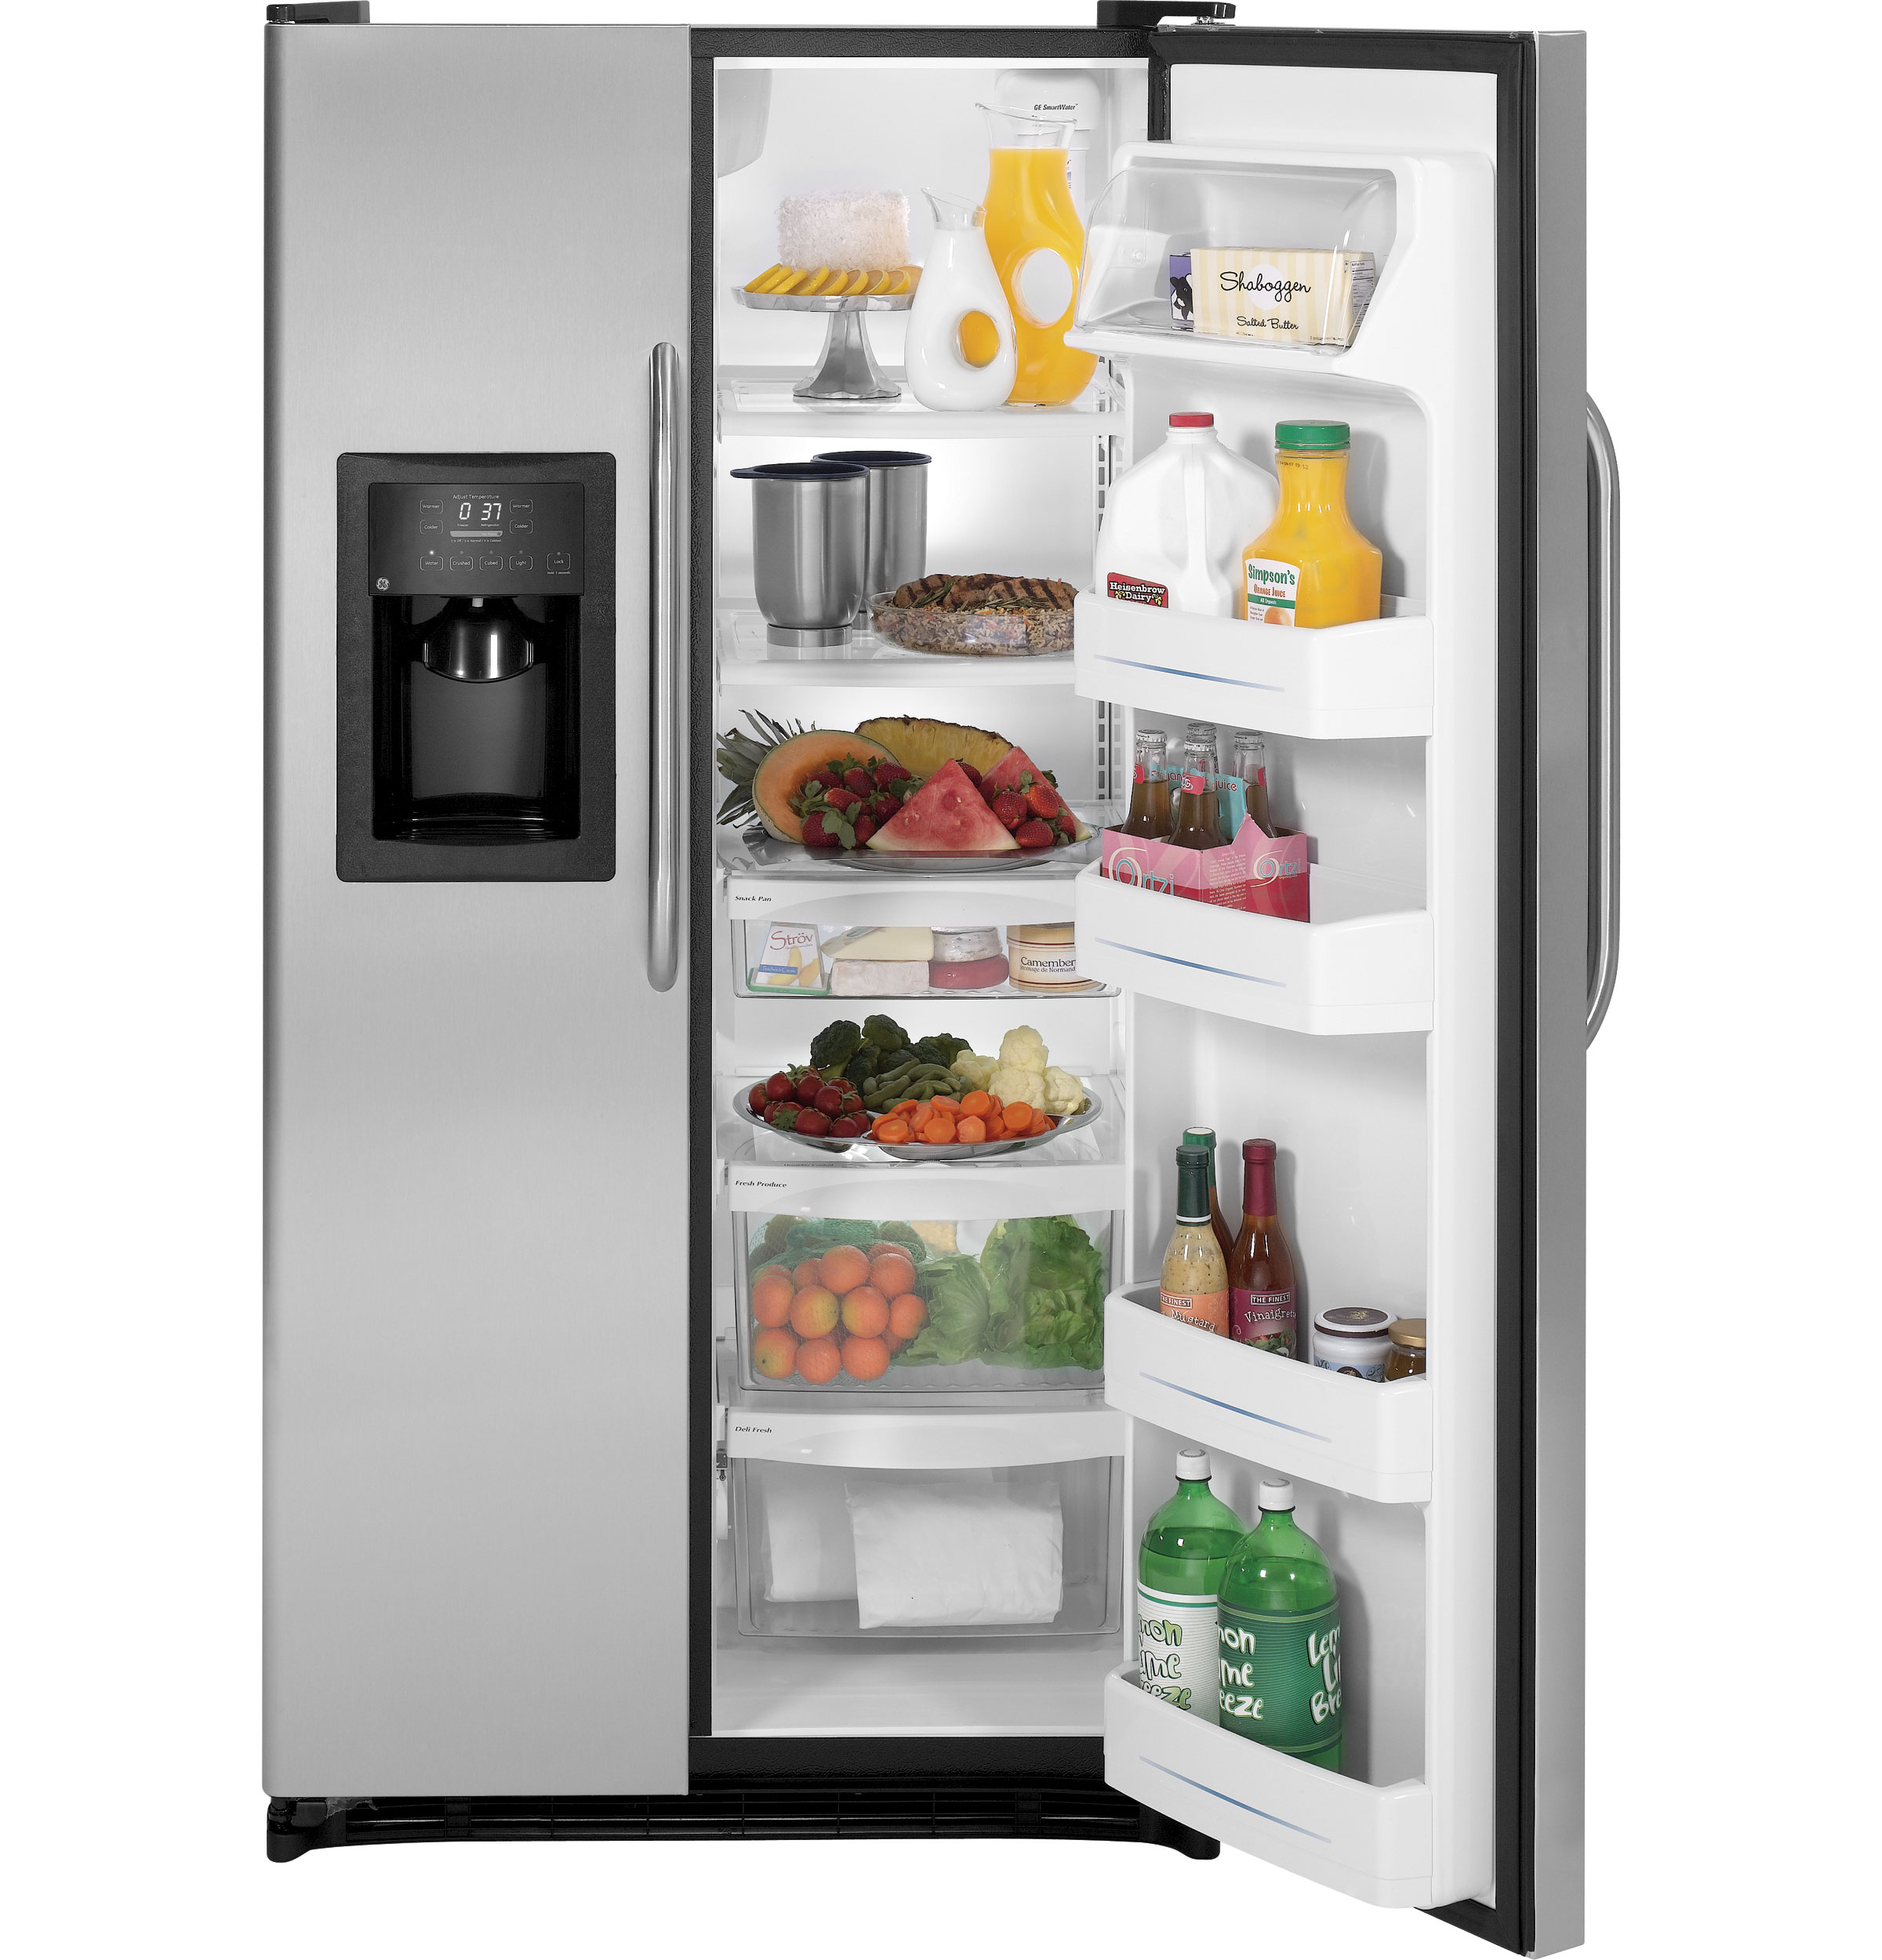 ge® energy star® 25 3 cu ft side by side refrigerator product image product image product image